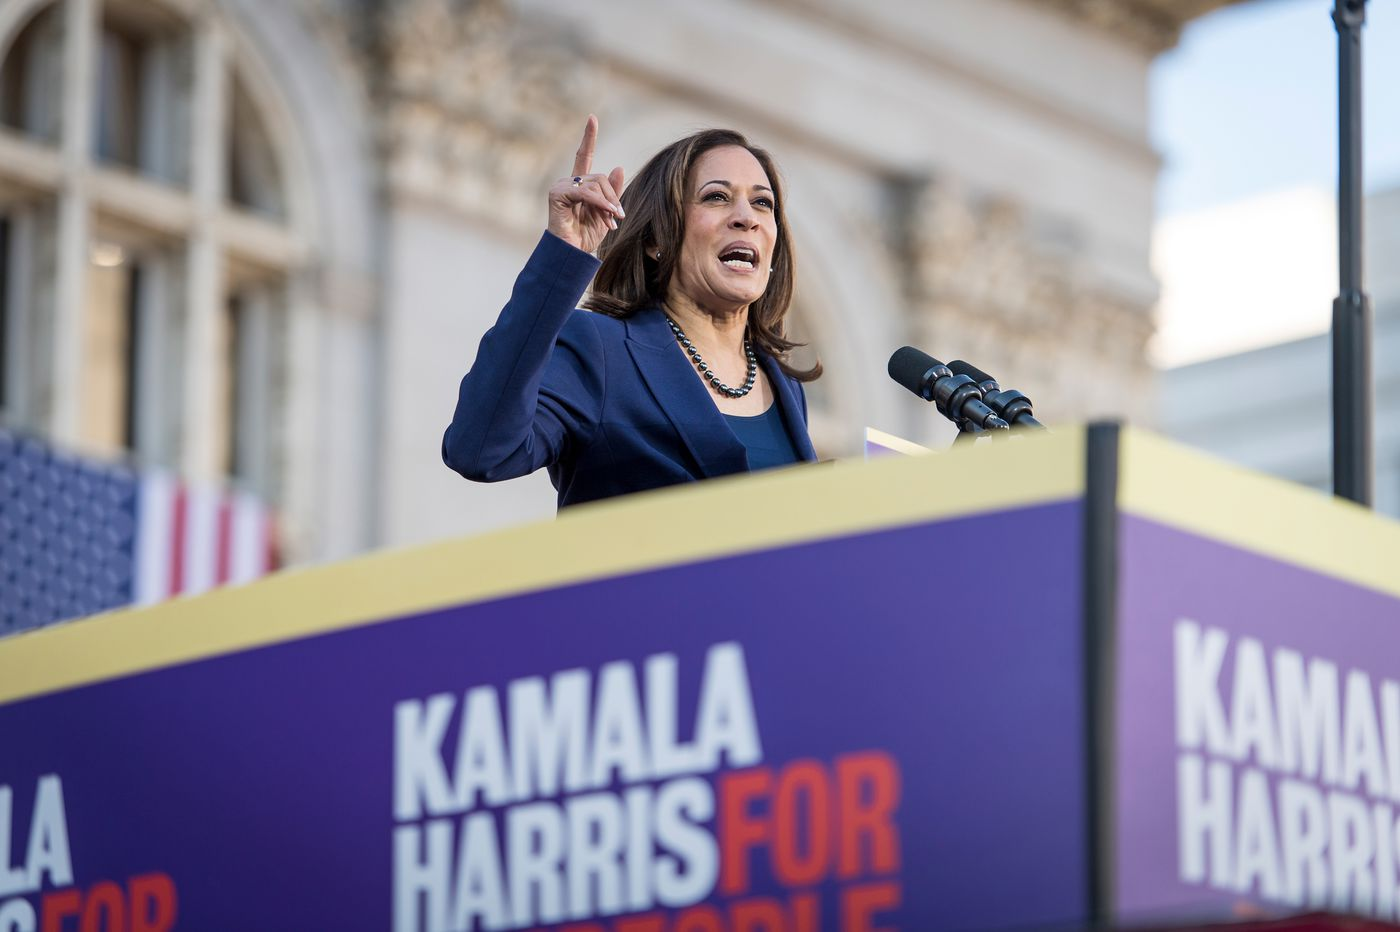 Kamala Harris Admits To Smoking Weed - She Even Inhaled